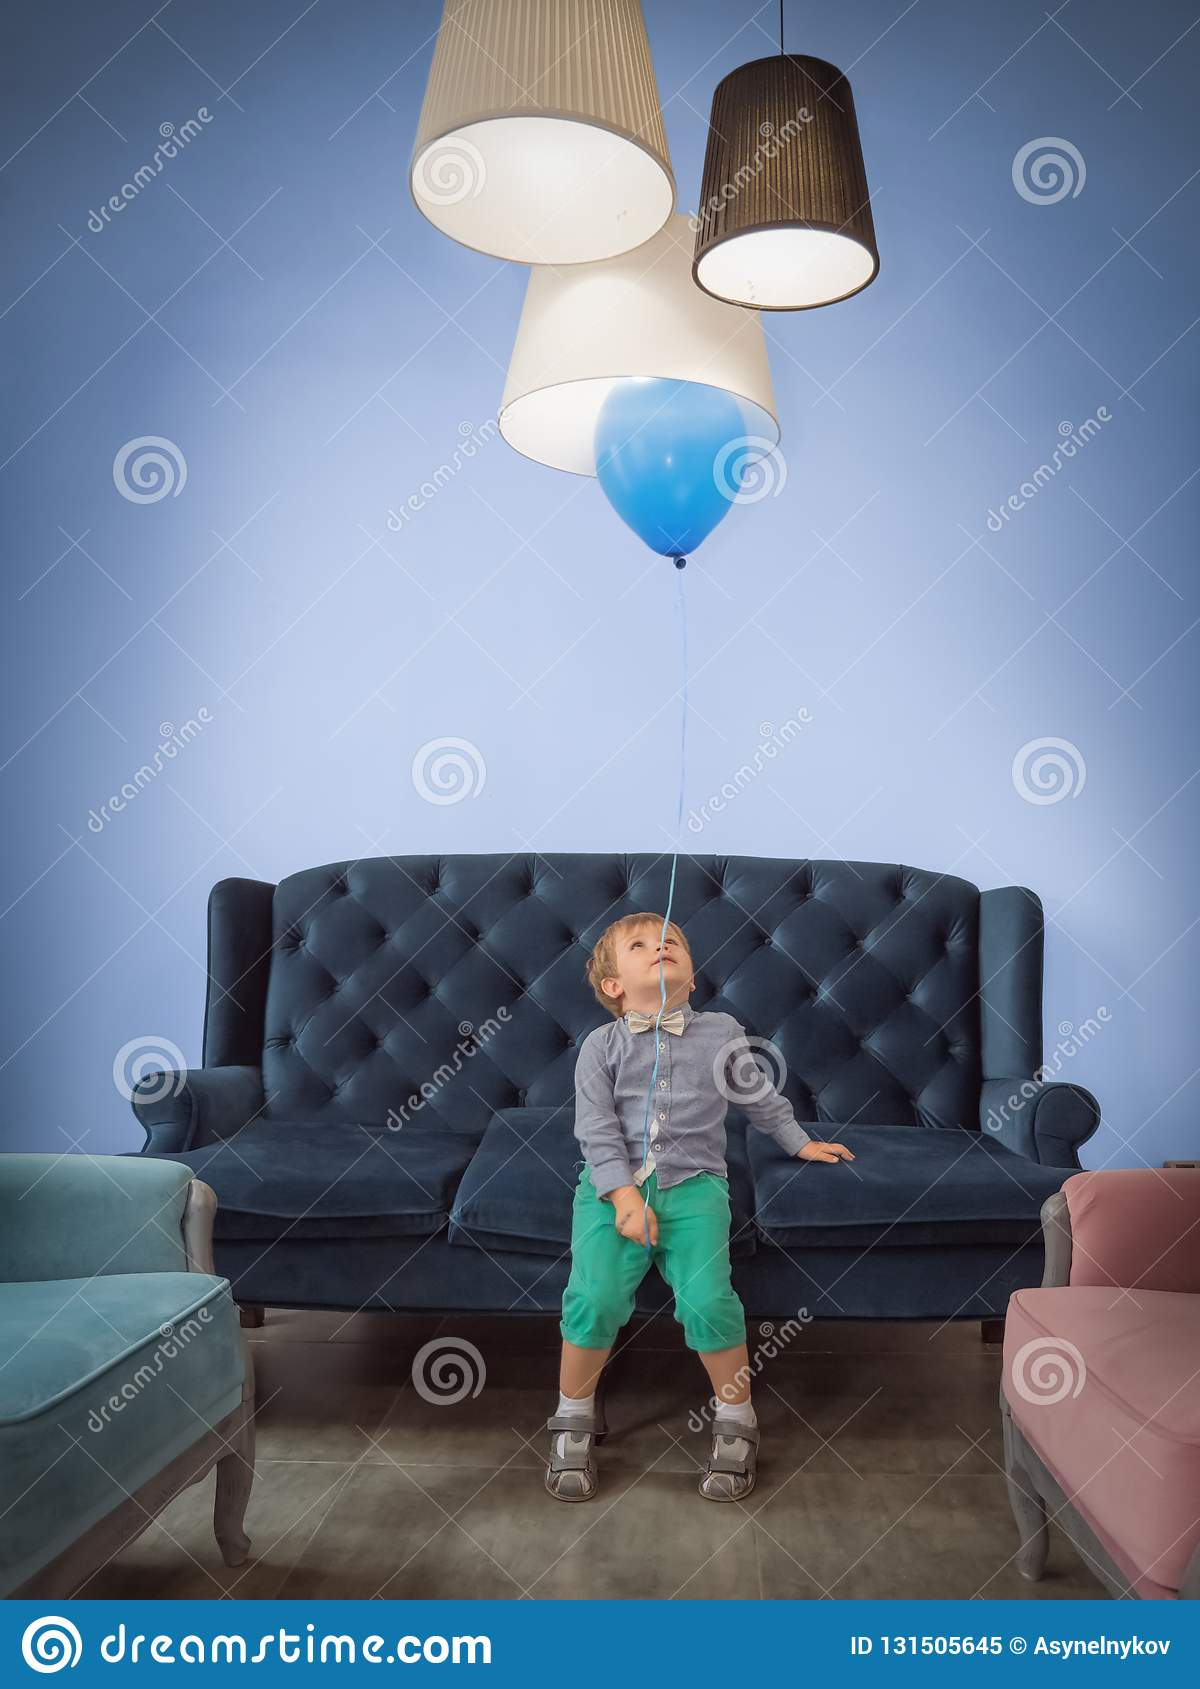 Children celebration background. Happy childhood concept. Cute boy with balloon having fun at home.